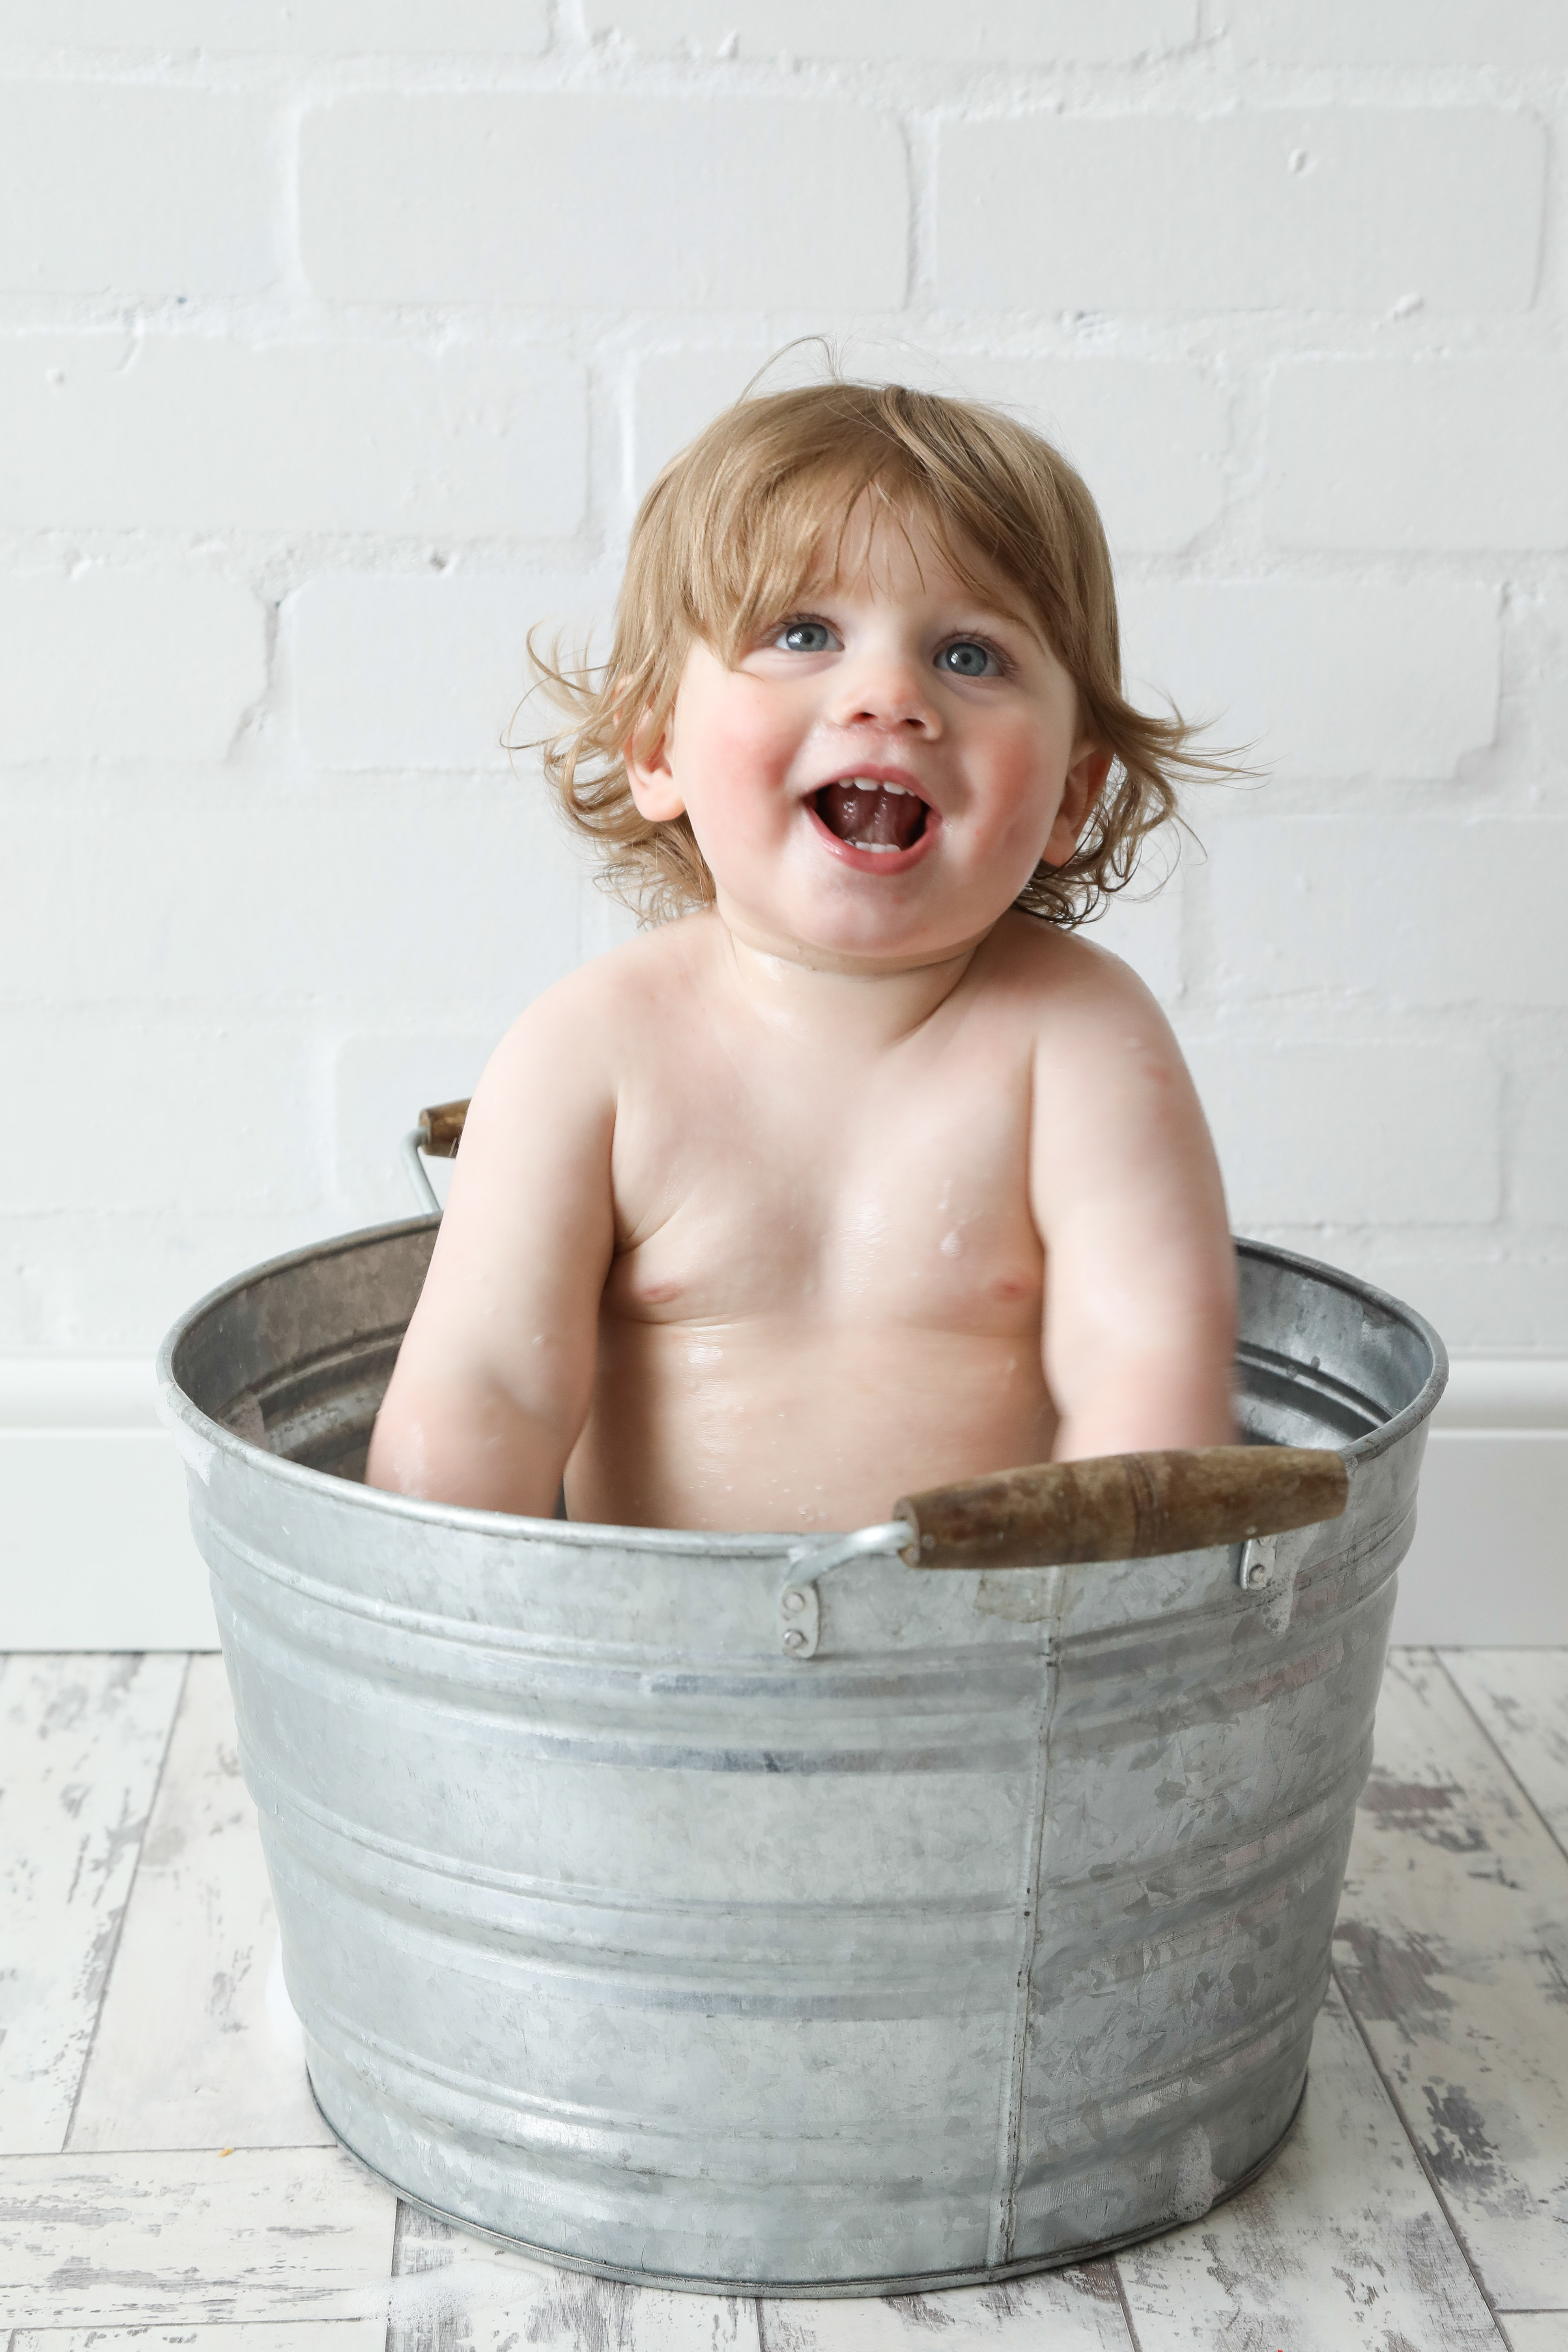 Baby Bath Photography Stockport and Manchester